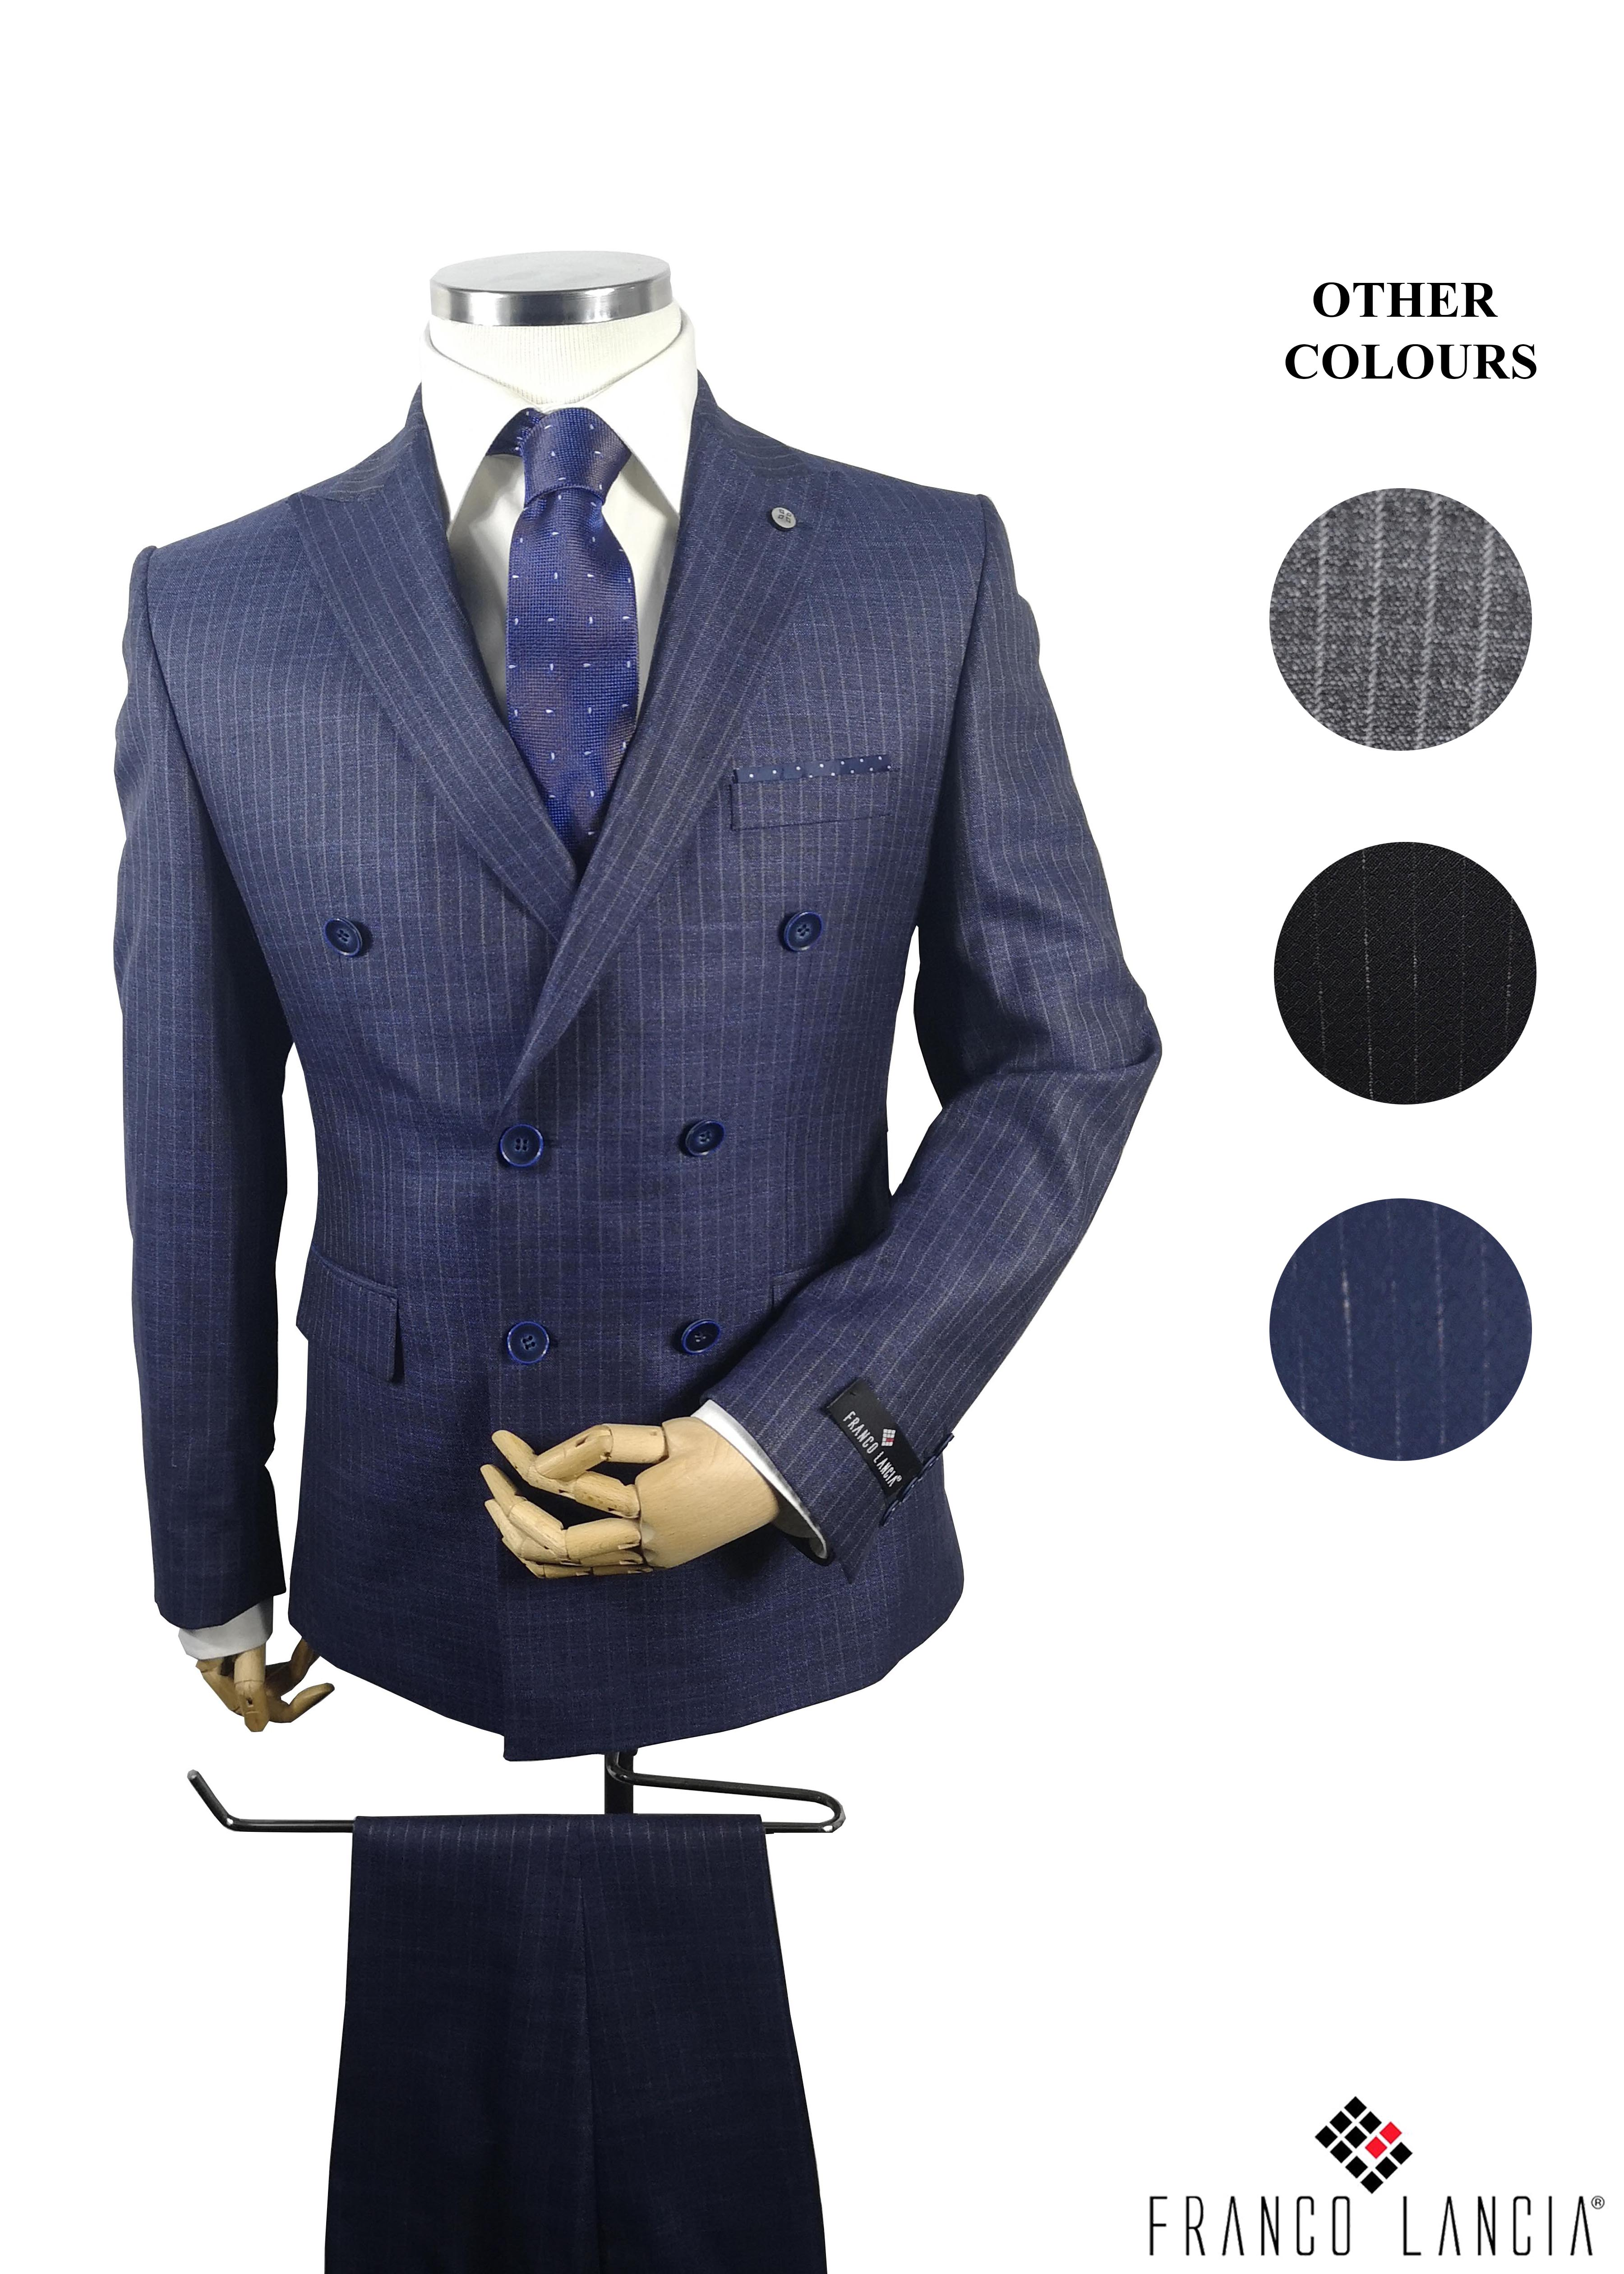 Double-Breasted Suit Model and Colors